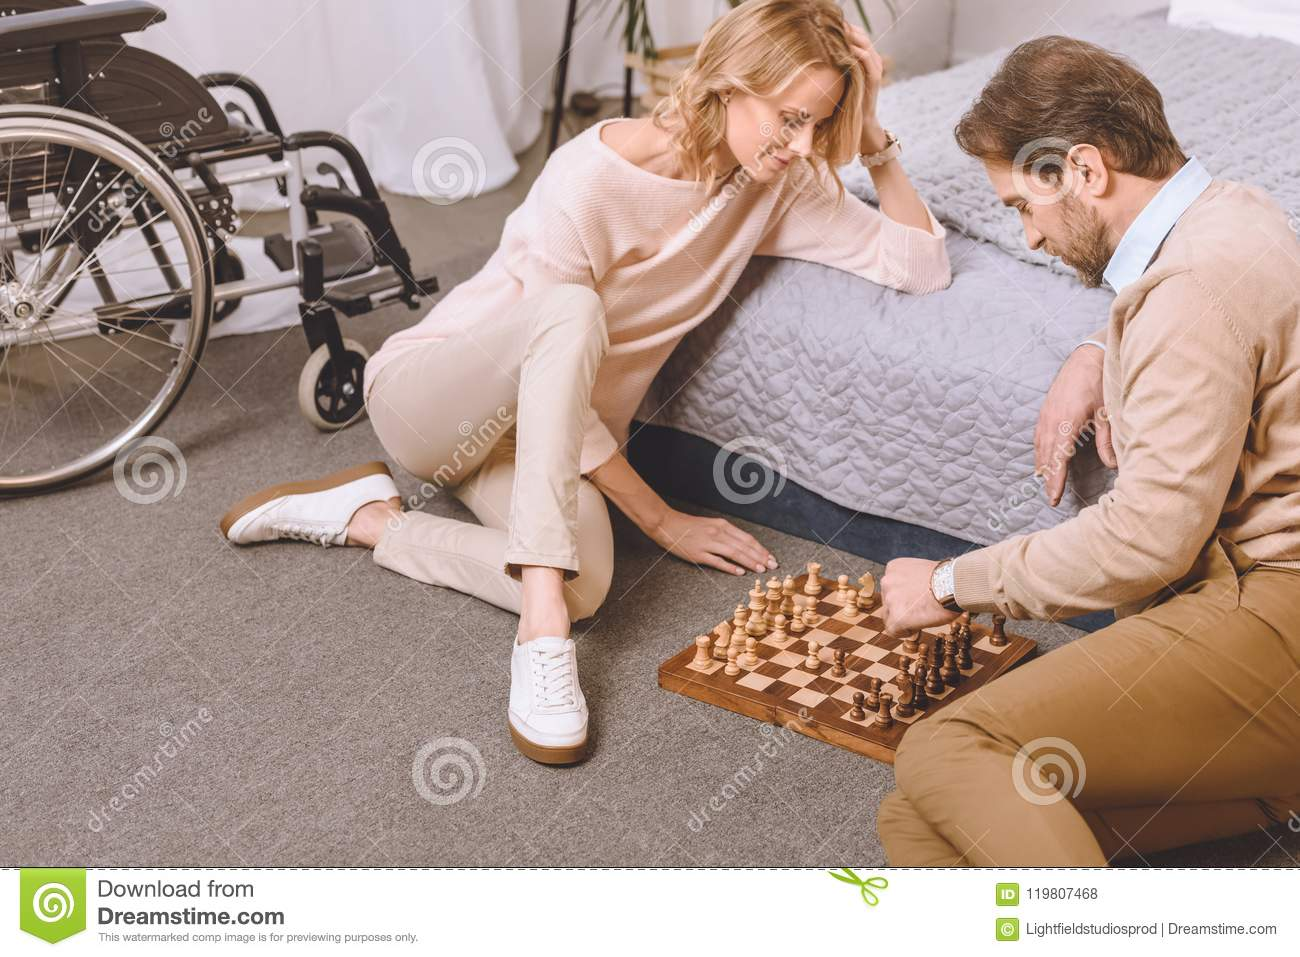 bedroom games to play with your husband